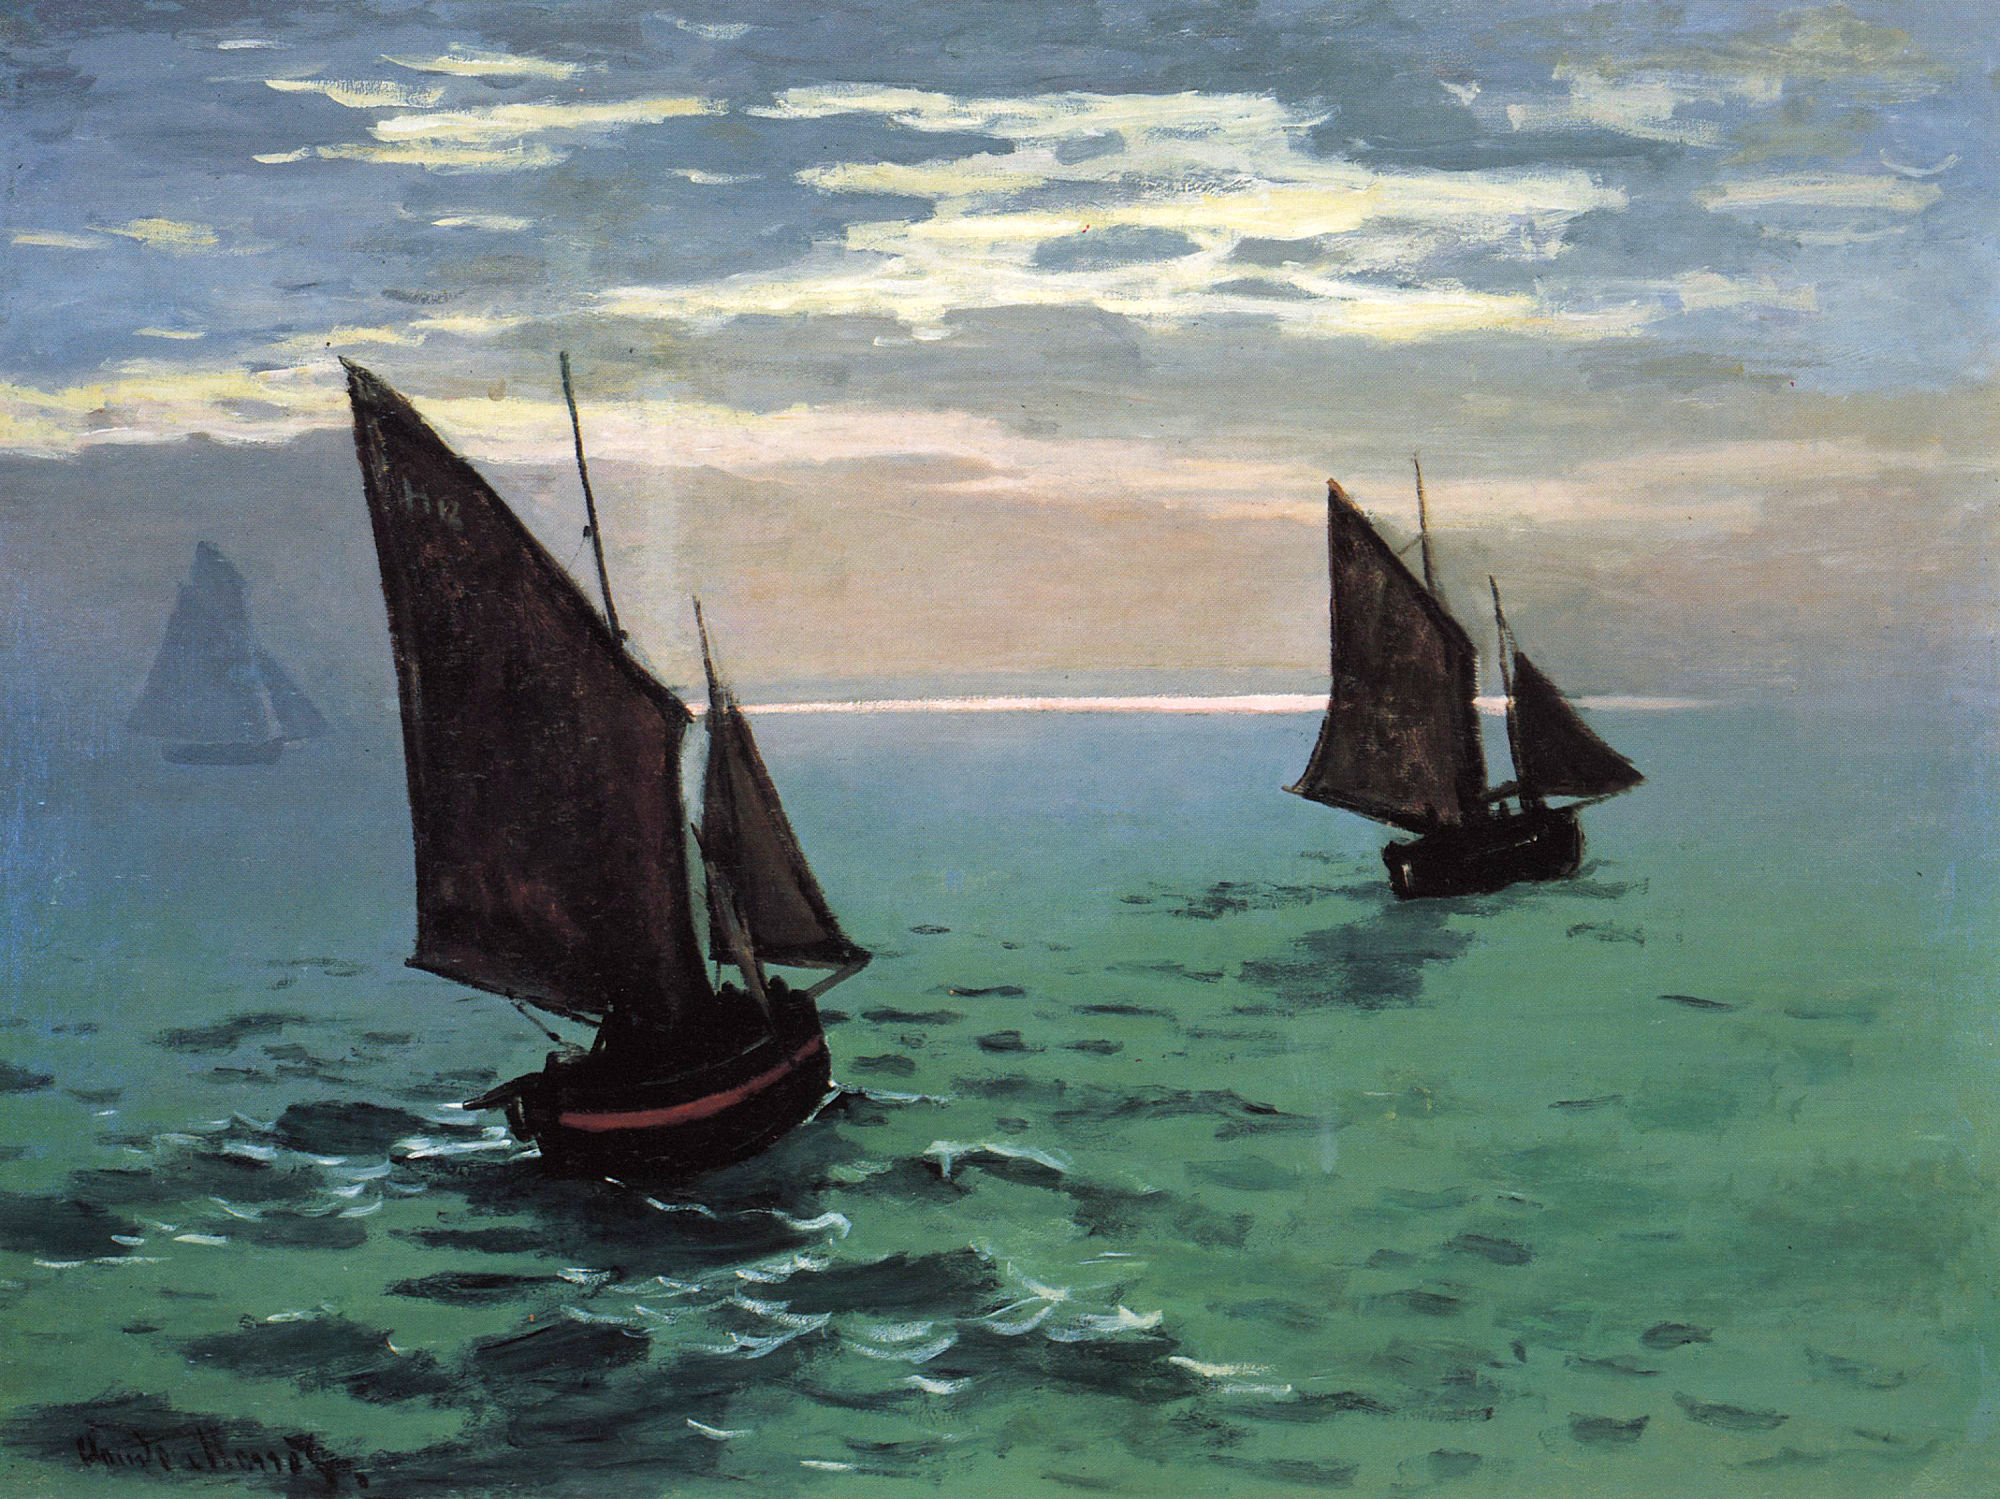 Claude Monet - Fishing Boats at Sea 1868 in high definition ...